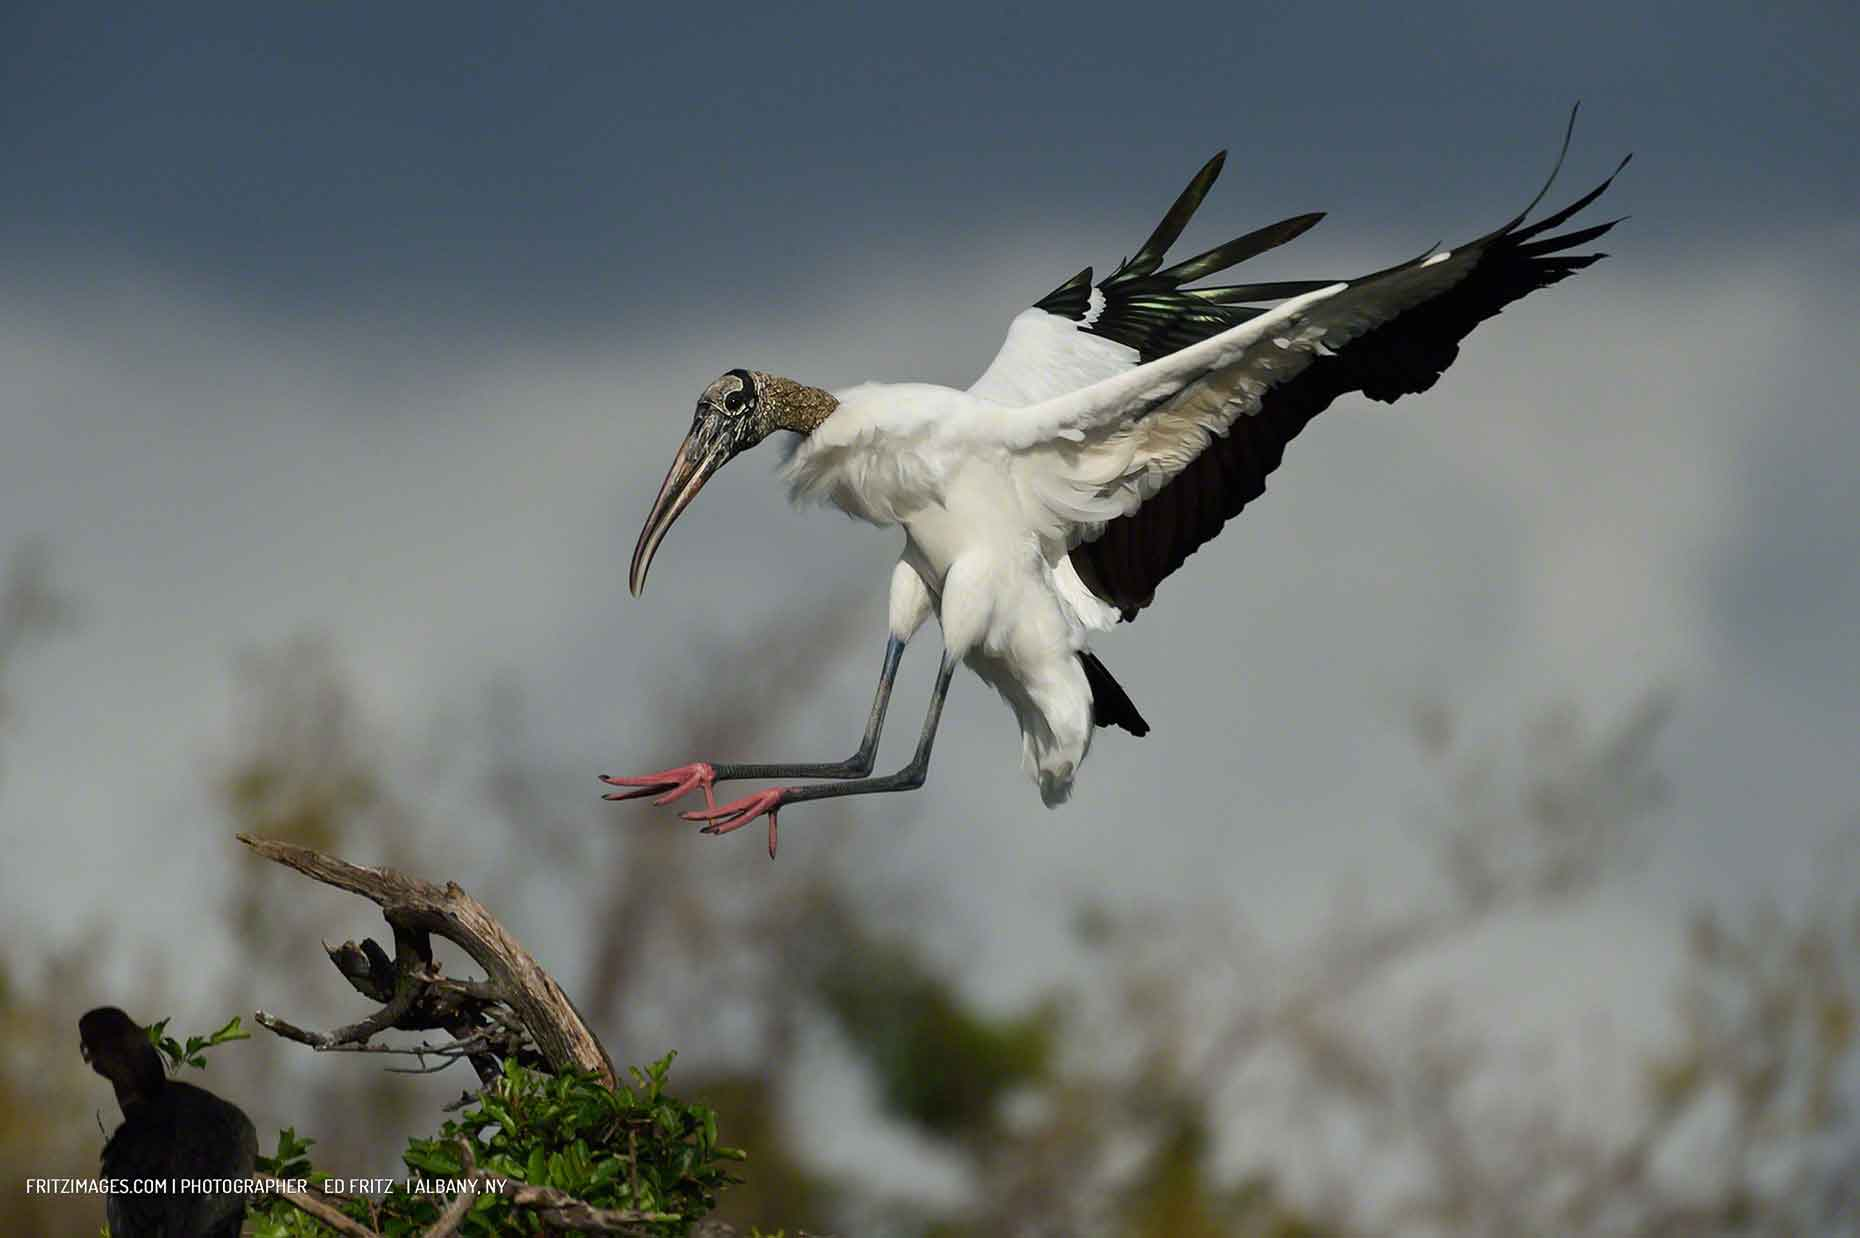 Tampa Wood Stork by photographer Ed Fritz